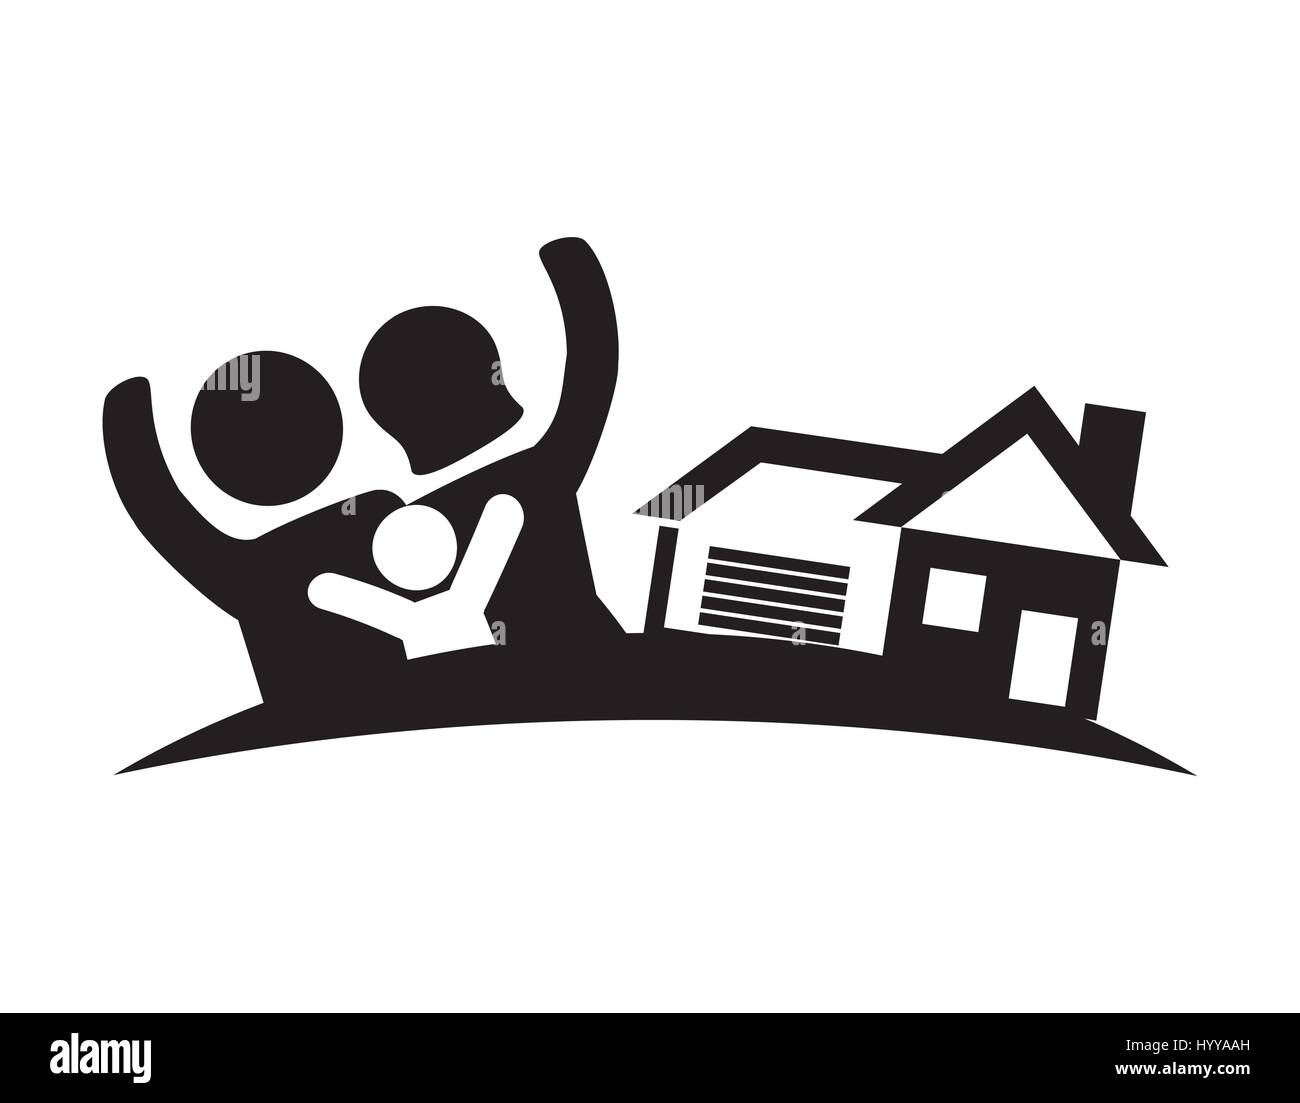 family home real estate image - Stock Vector